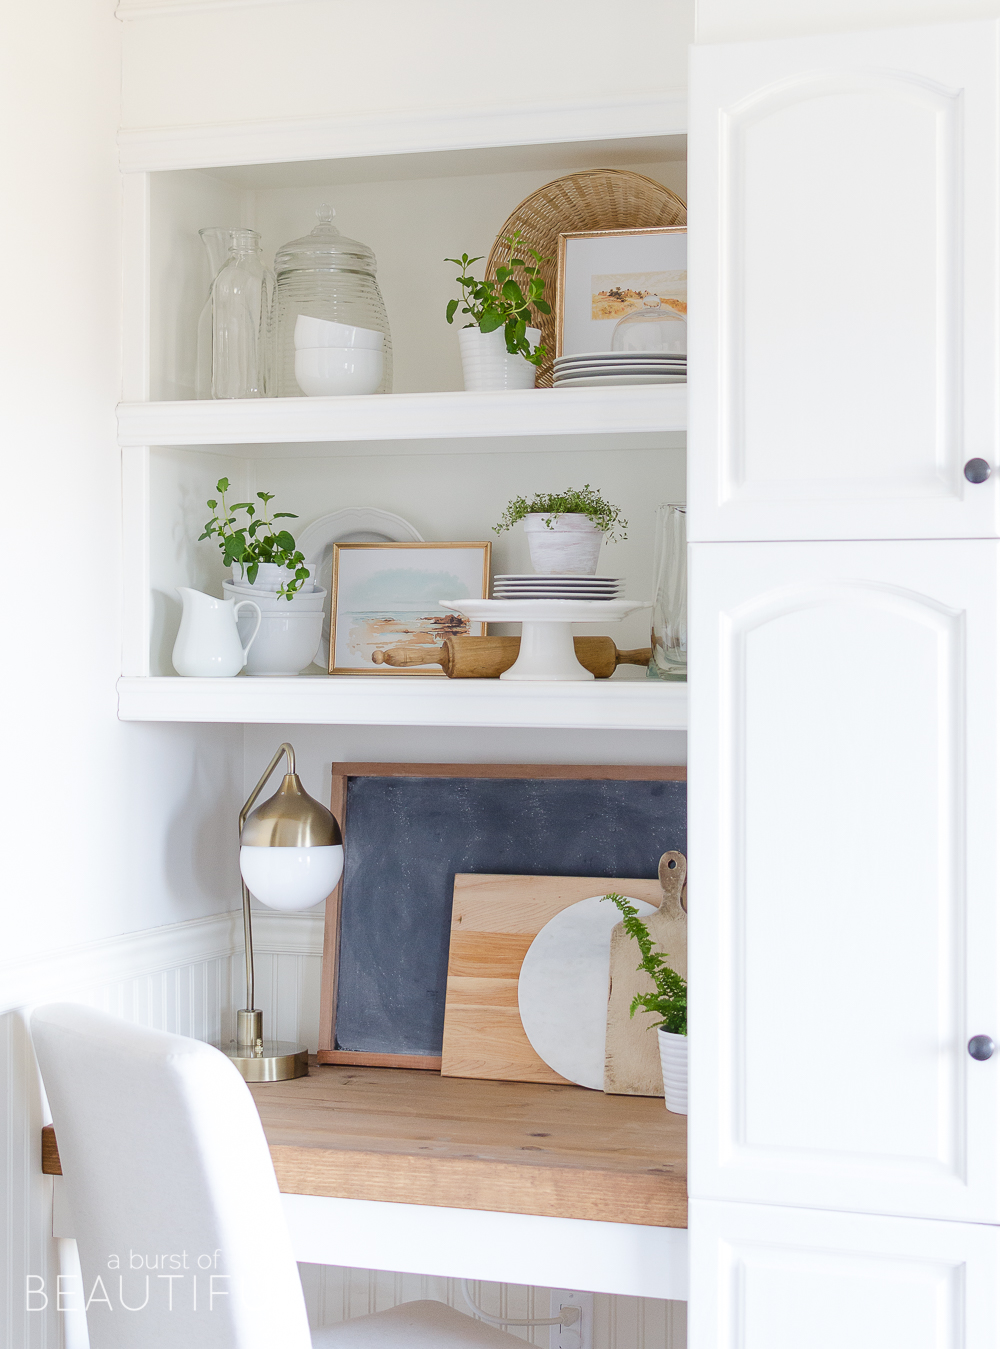 Learn how to style open shelving in the kitchen and create this effortless modern farmhouse look